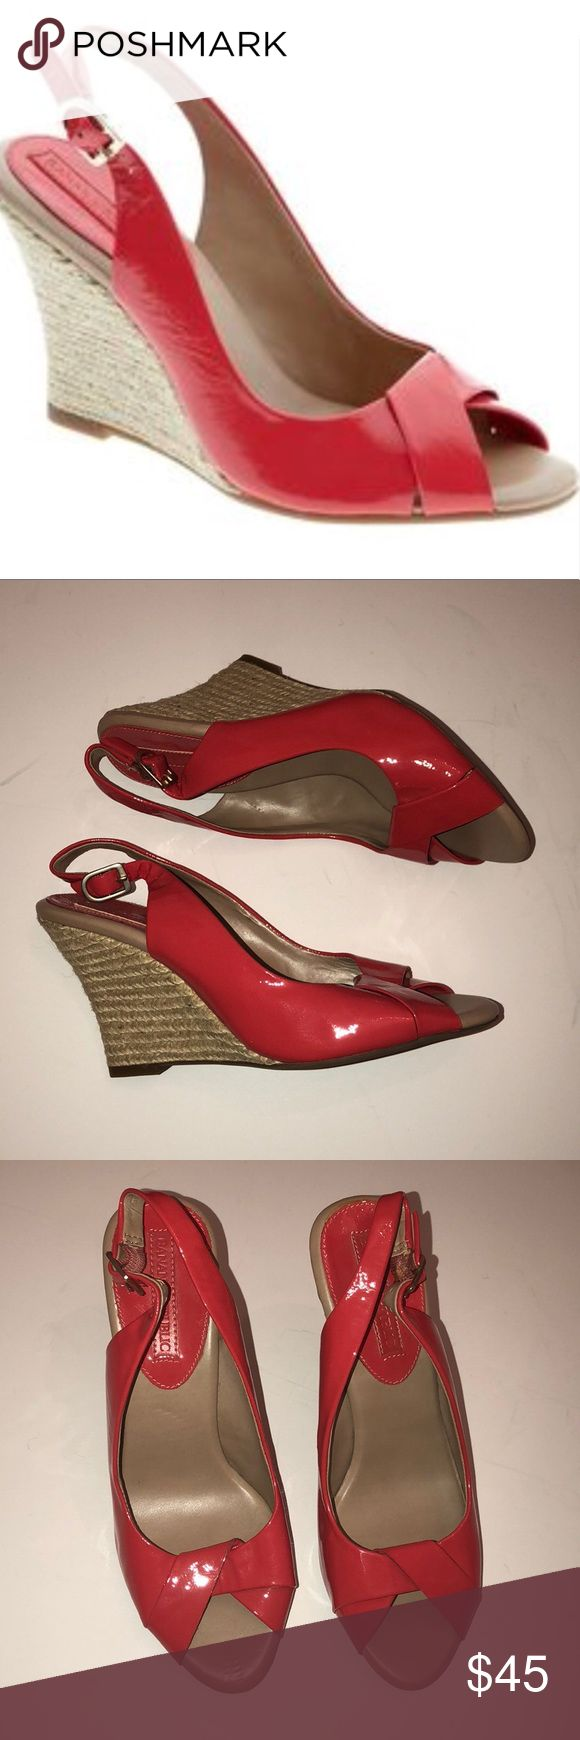 Banana republic orange wedges size 8 women's Gently used   No stains or holes  Super comfortable  Great for spring coming up Banana Republic Shoes Wedges